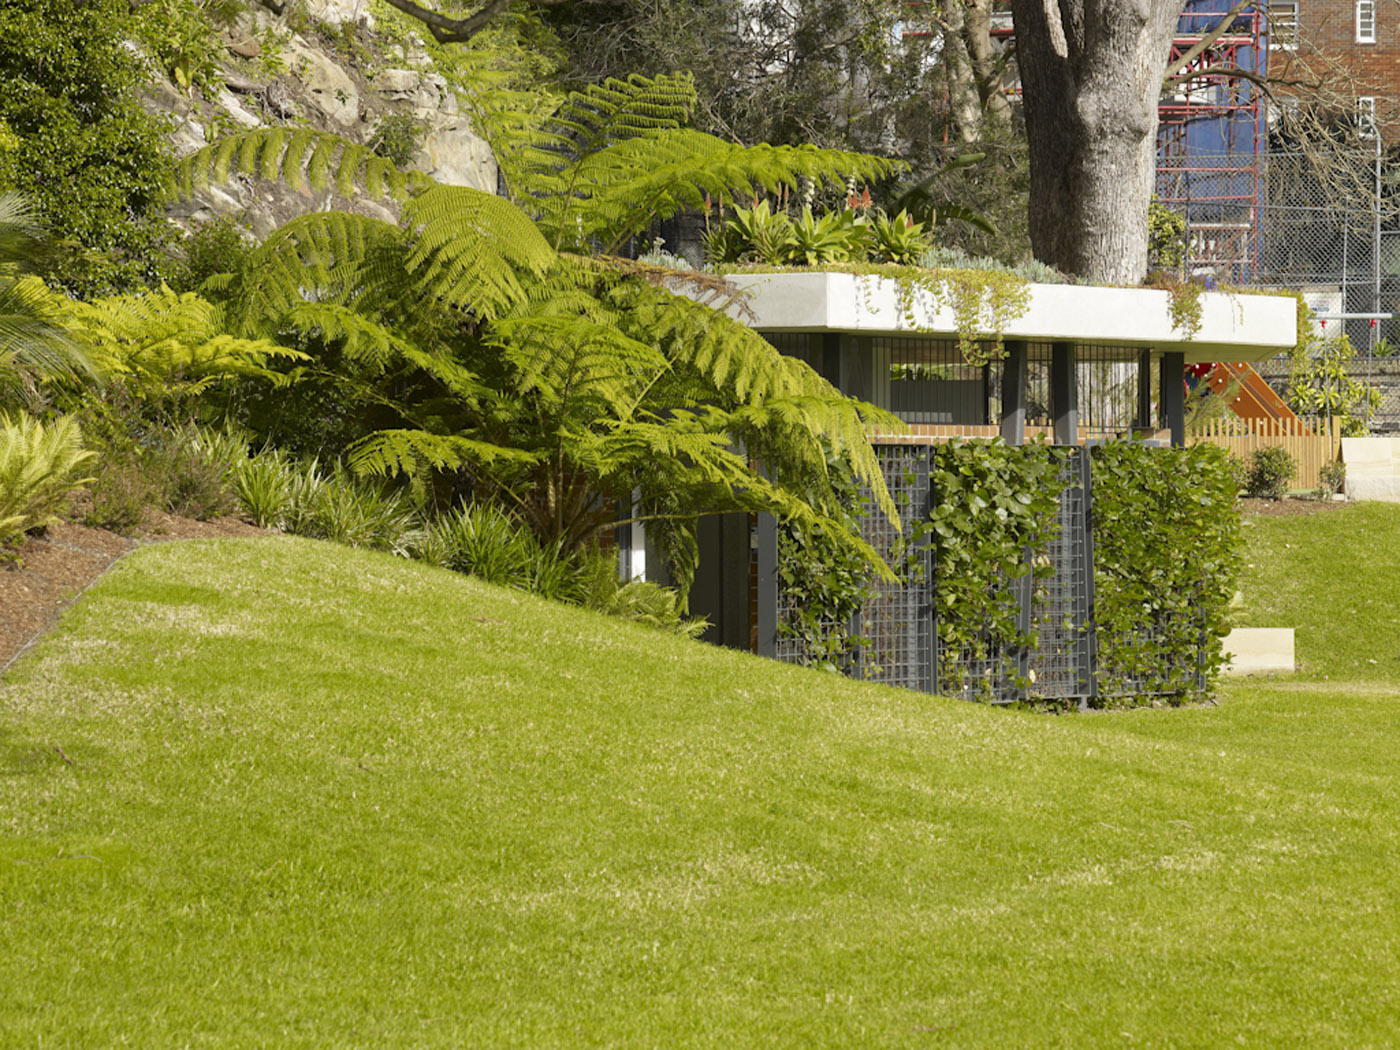 Beare Park Amenities by award winning Sydney public architecture firm Sam Crawford Architects. The facility blending with the surrounding greenery